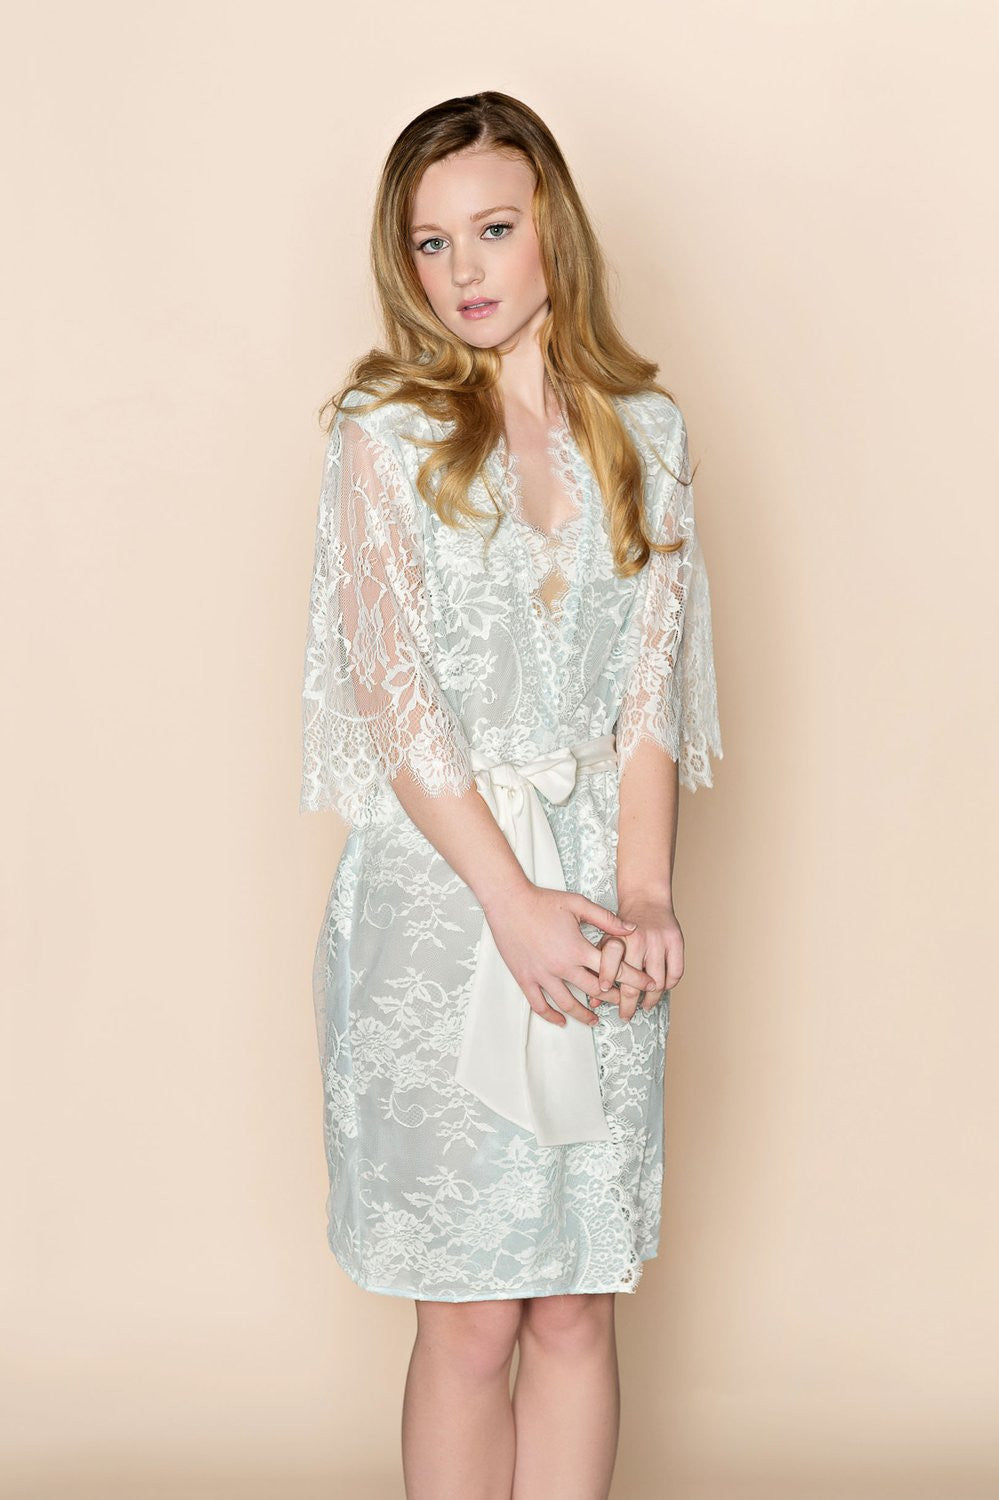 SWAN QUEEN LACE & SILK BRIDAL ROBE KIMONO IN POWDER BLUE - STYLE 104 BLUE